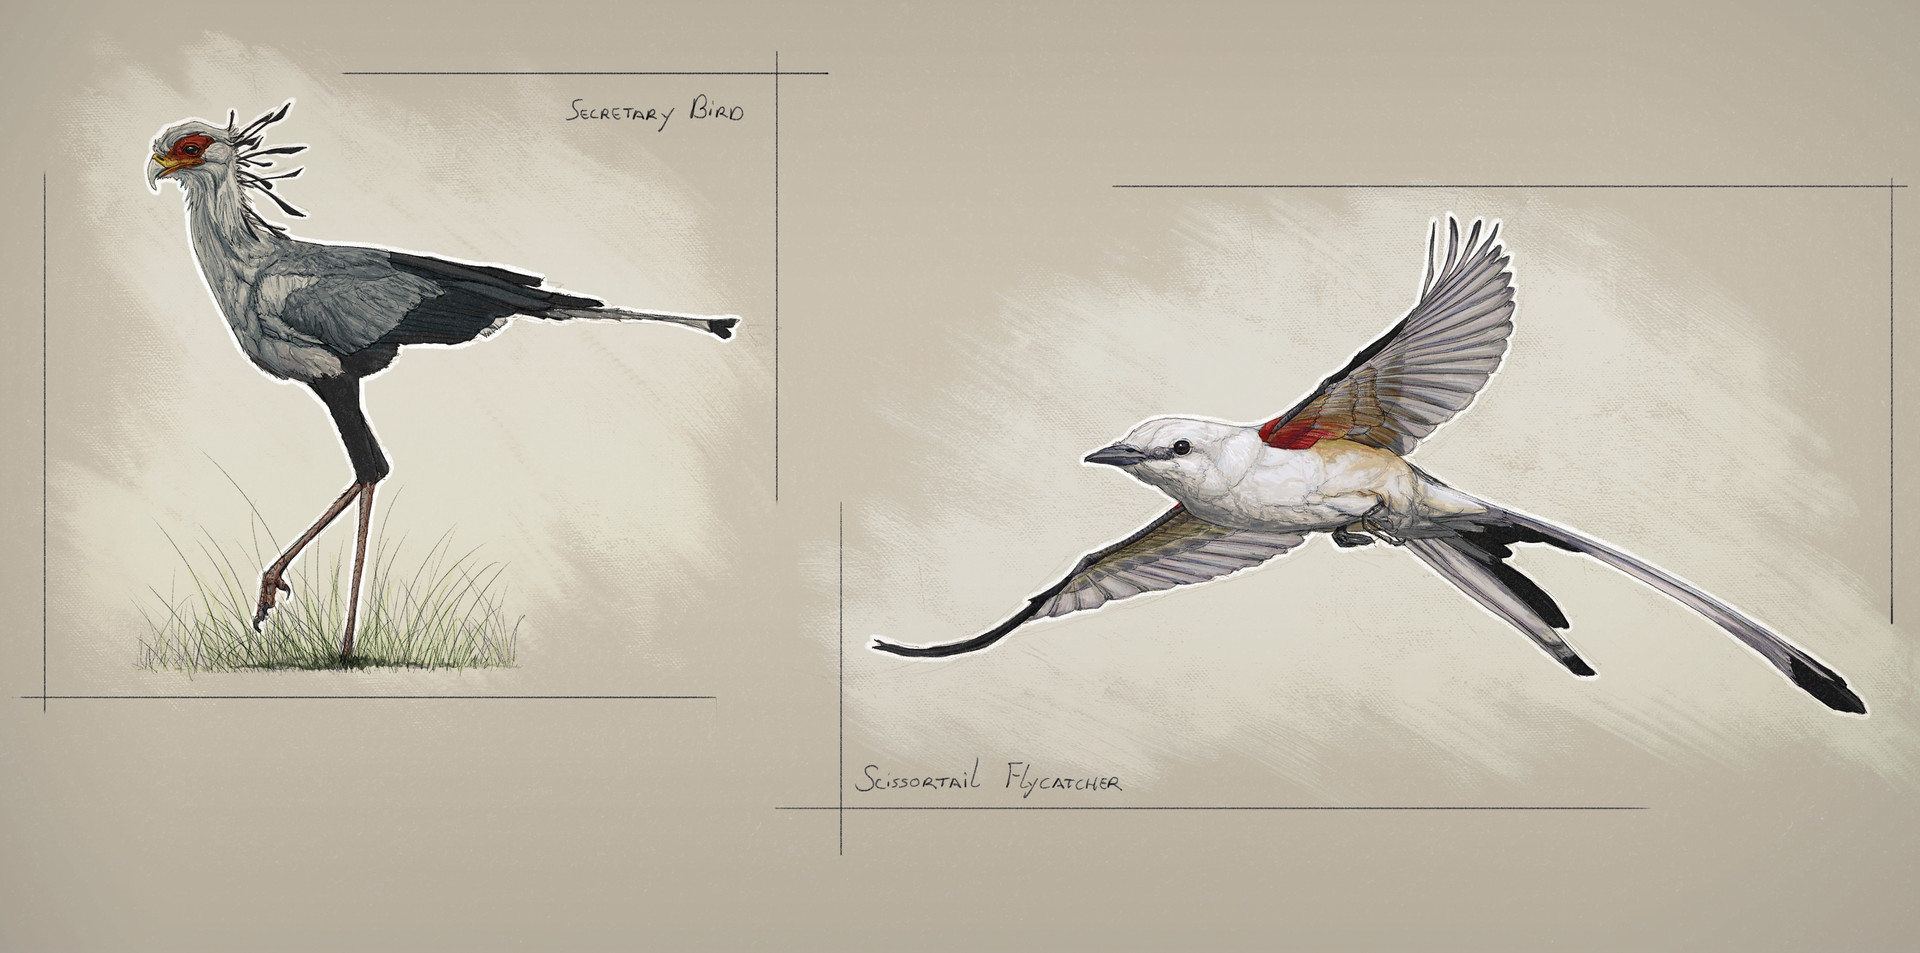 Jordi van hees lesson 3 animal observational sketches 1